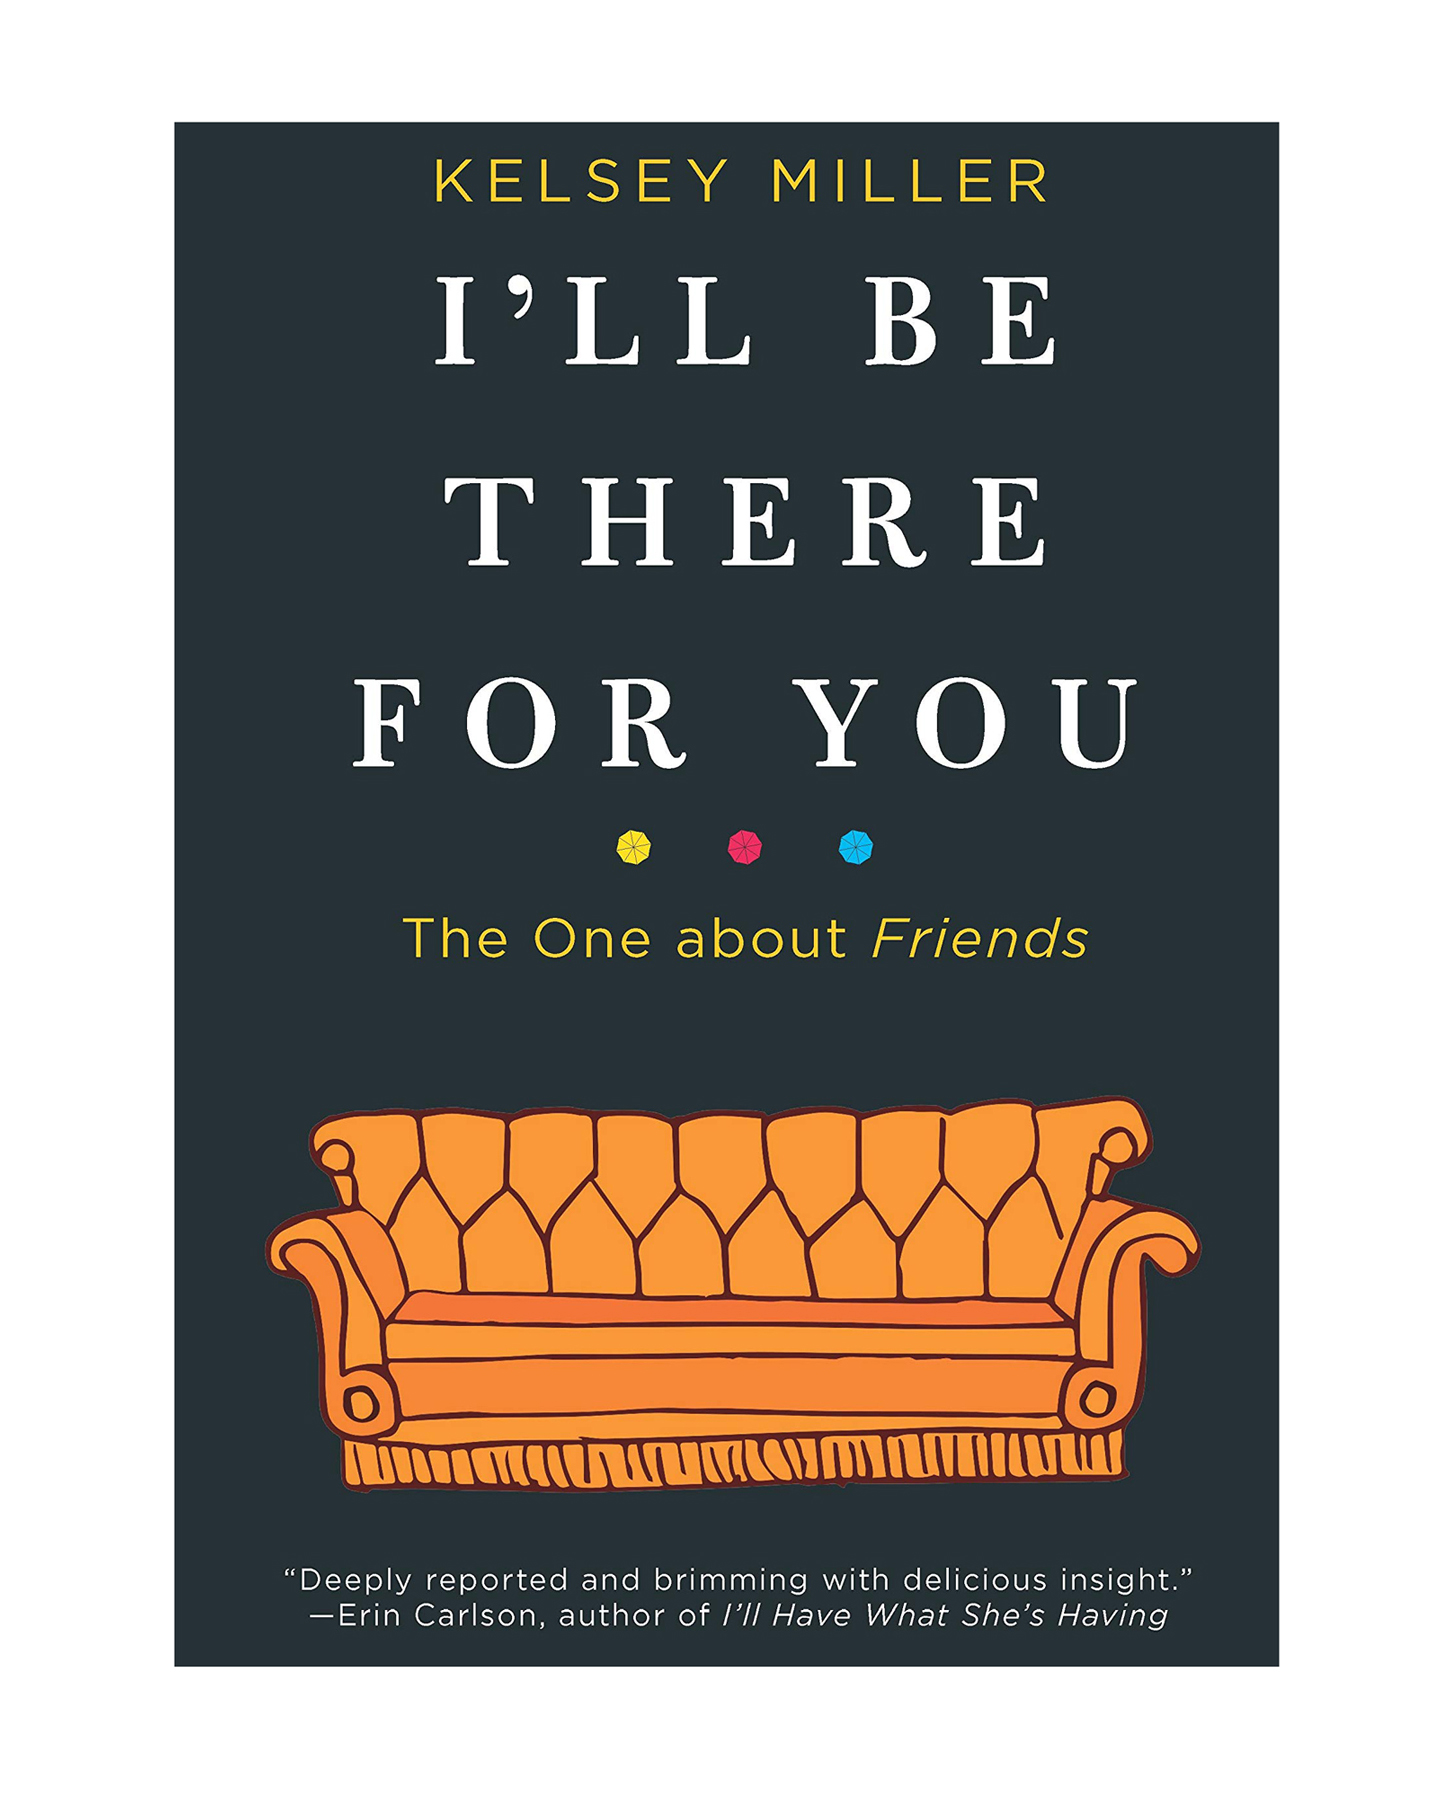 Cheap Christmas Gifts:  I'll Be There for You: The One about Friends  by Kelsey Miller book